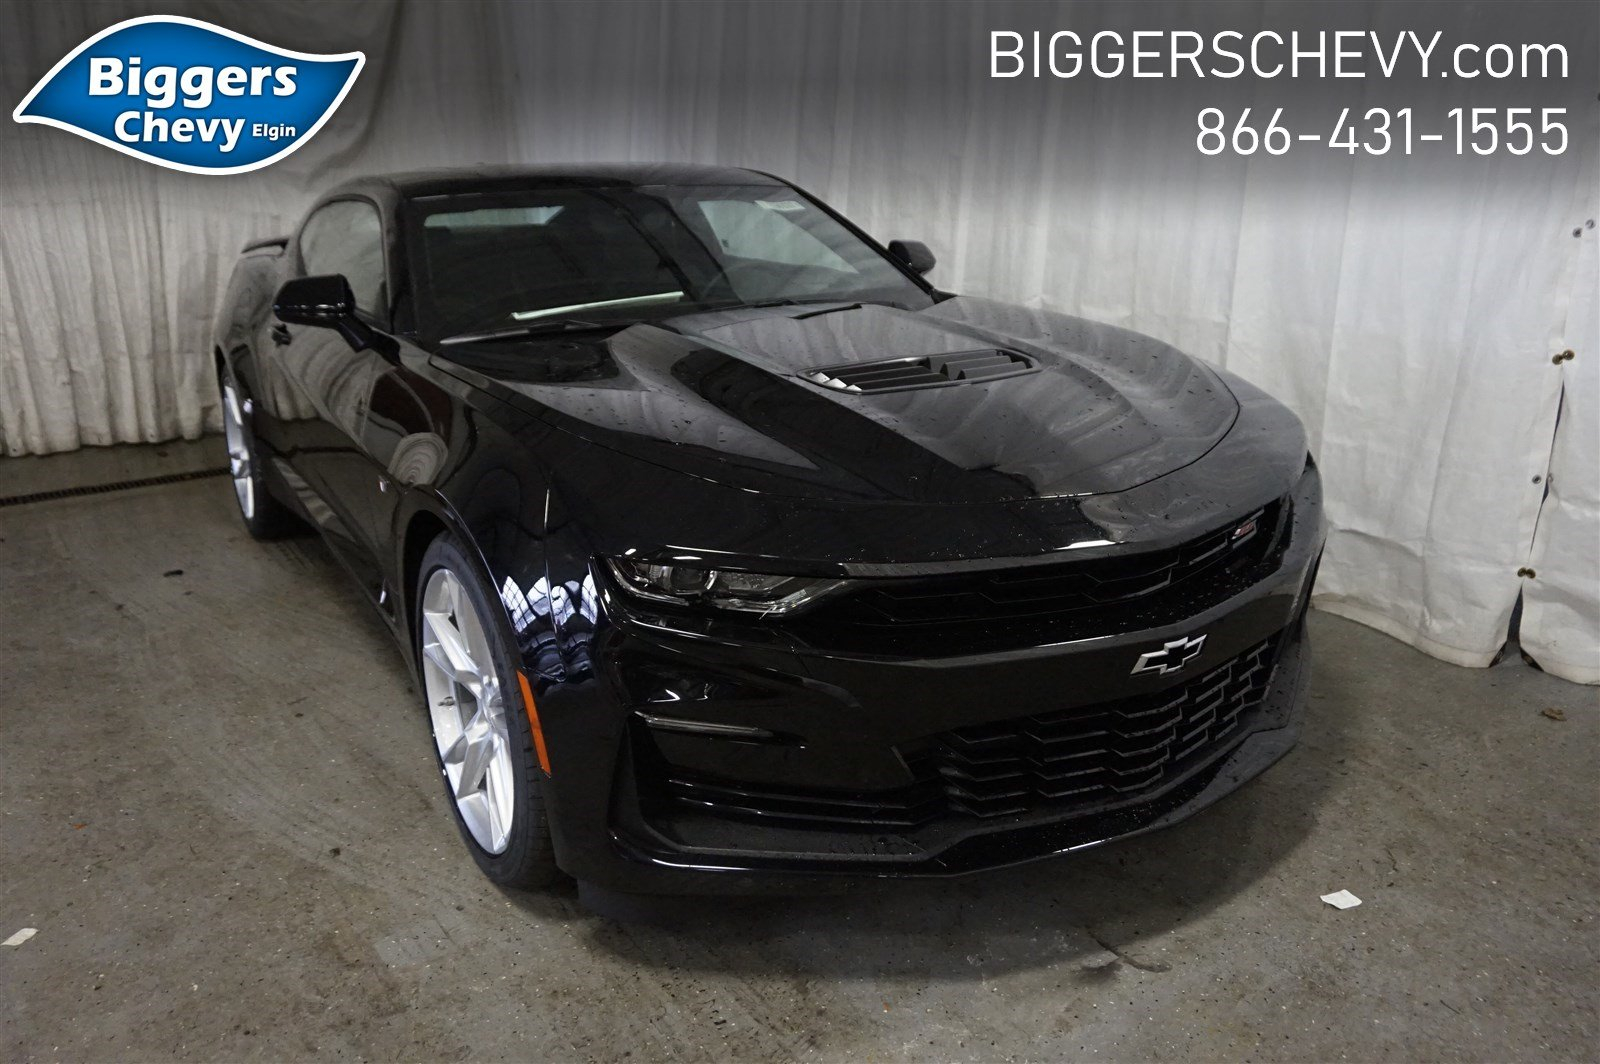 New 2019 Chevrolet Camaro 2Ss Rwd Coupe 2022 Chevy Camaro Transmission, Tire Size, Used